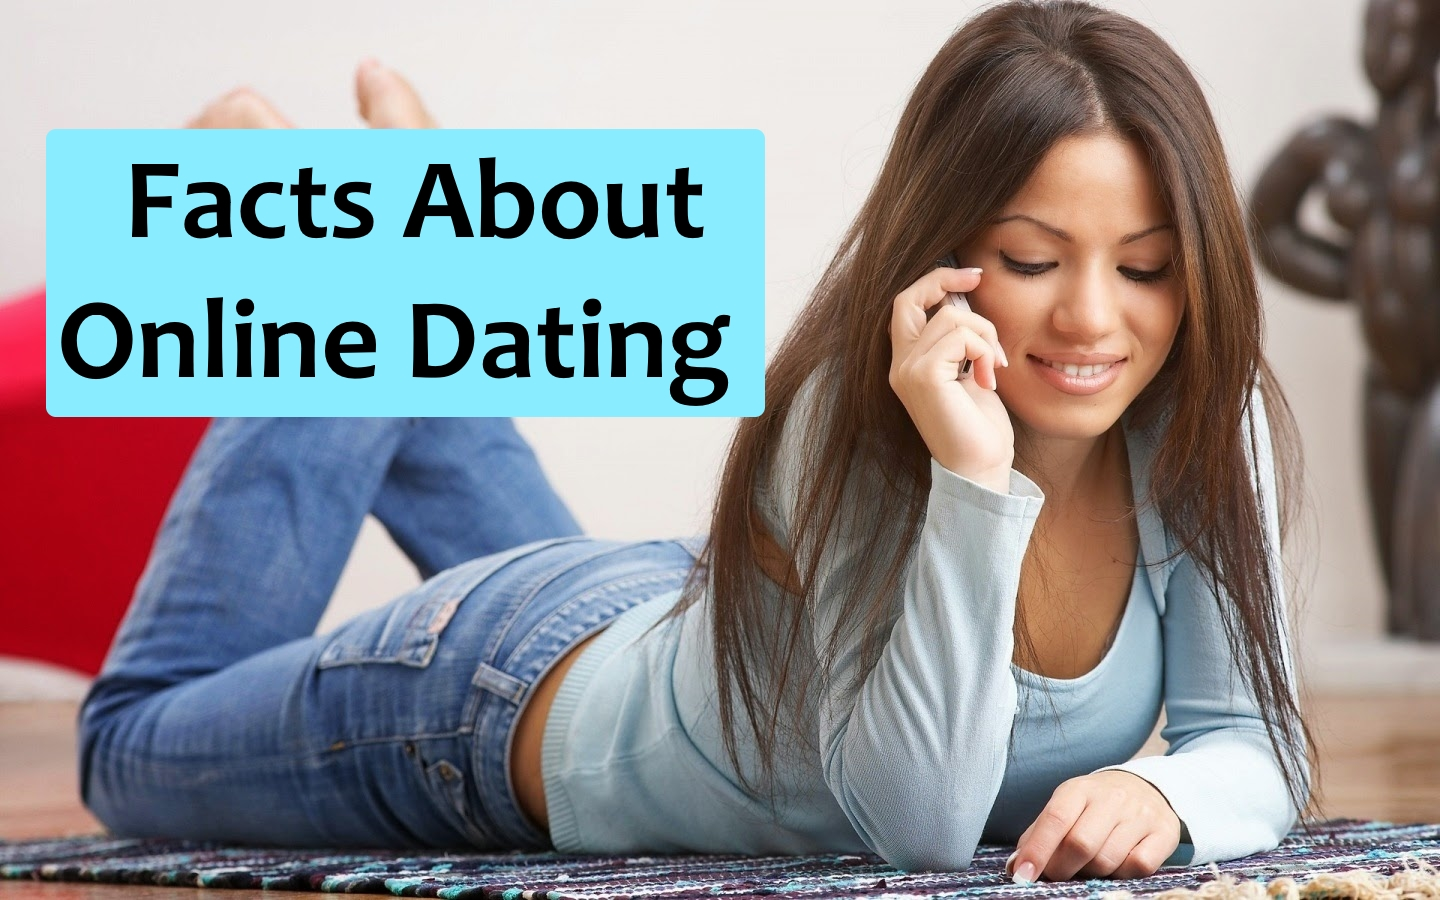 21 Amazing Online Dating Statistics The Good Bad & Weird